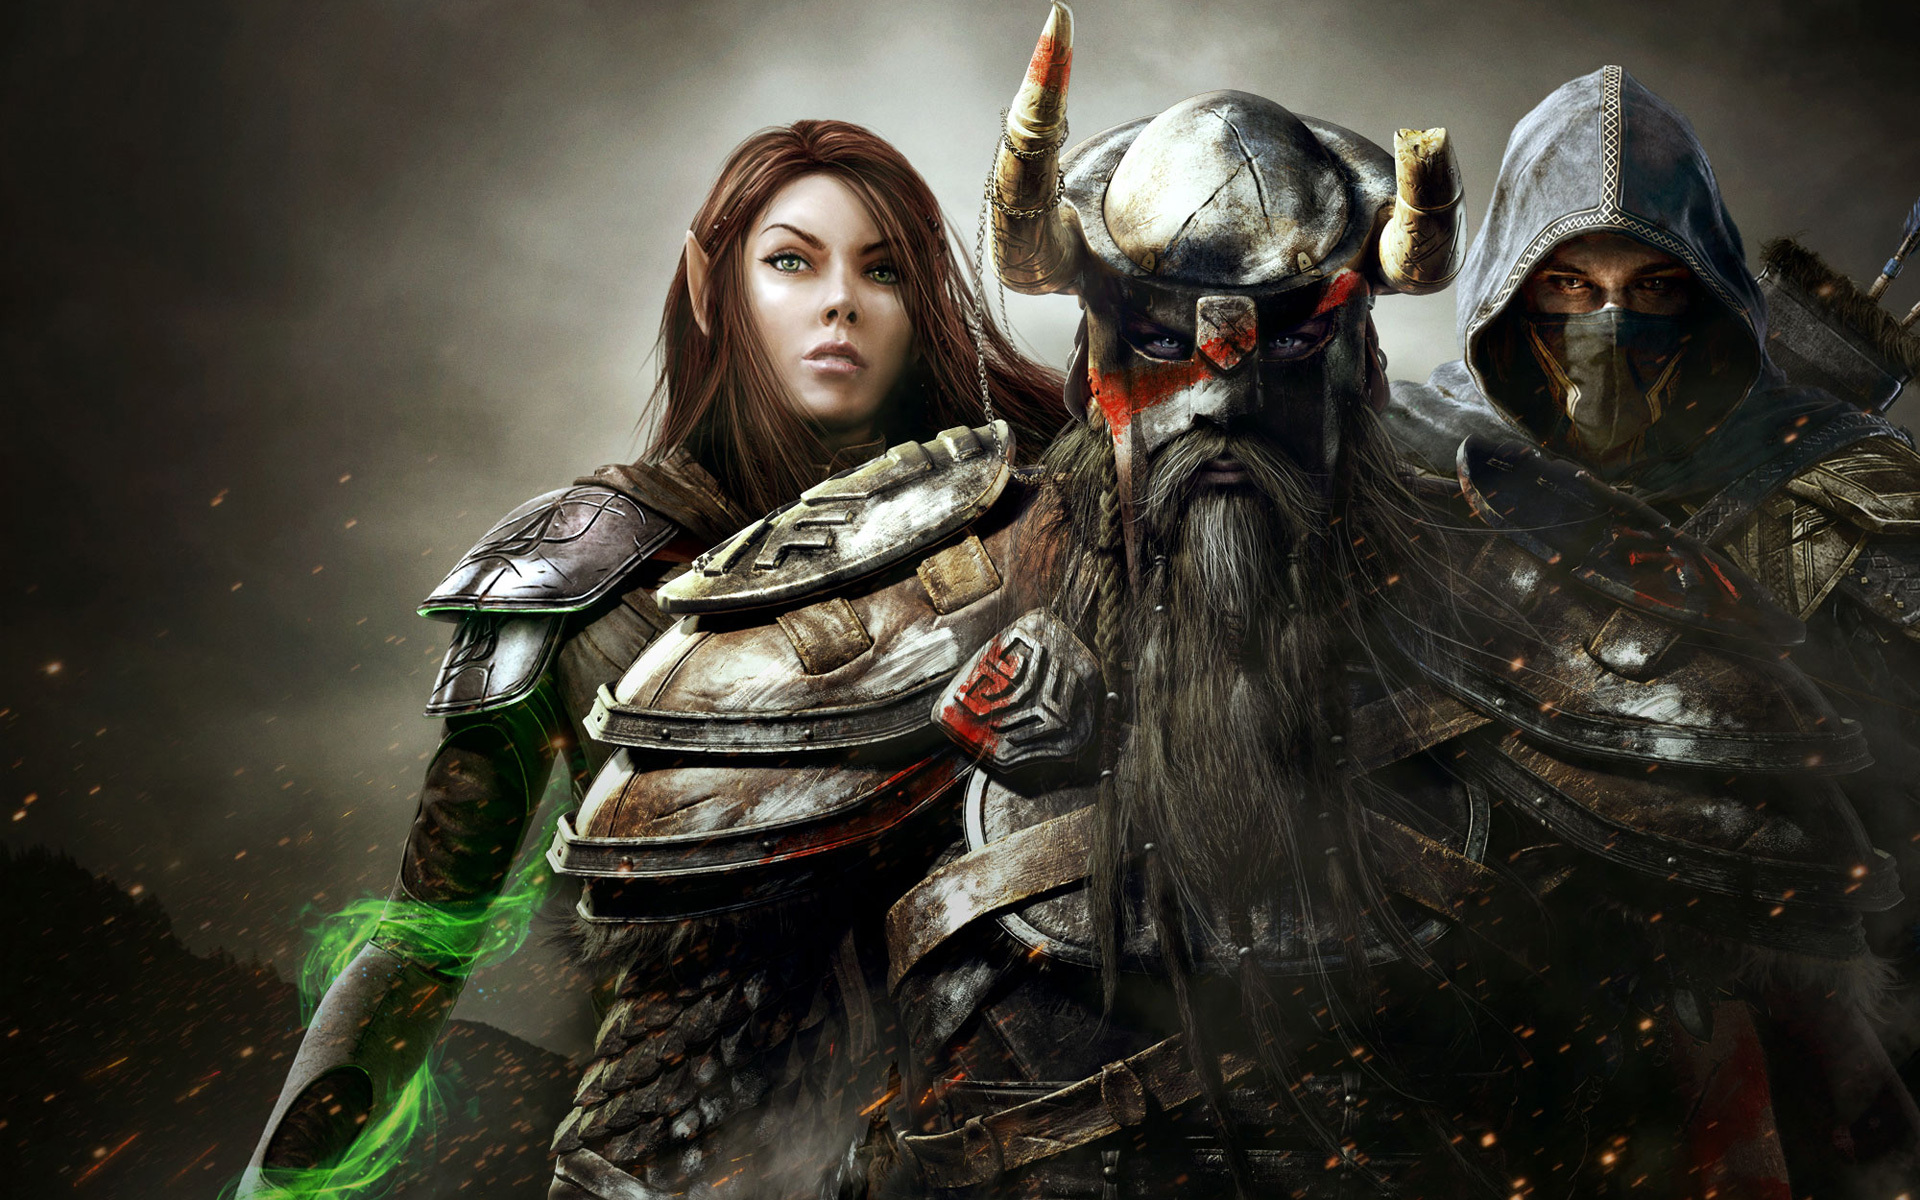 Wallpaper The Elder Scrolls Online: Group